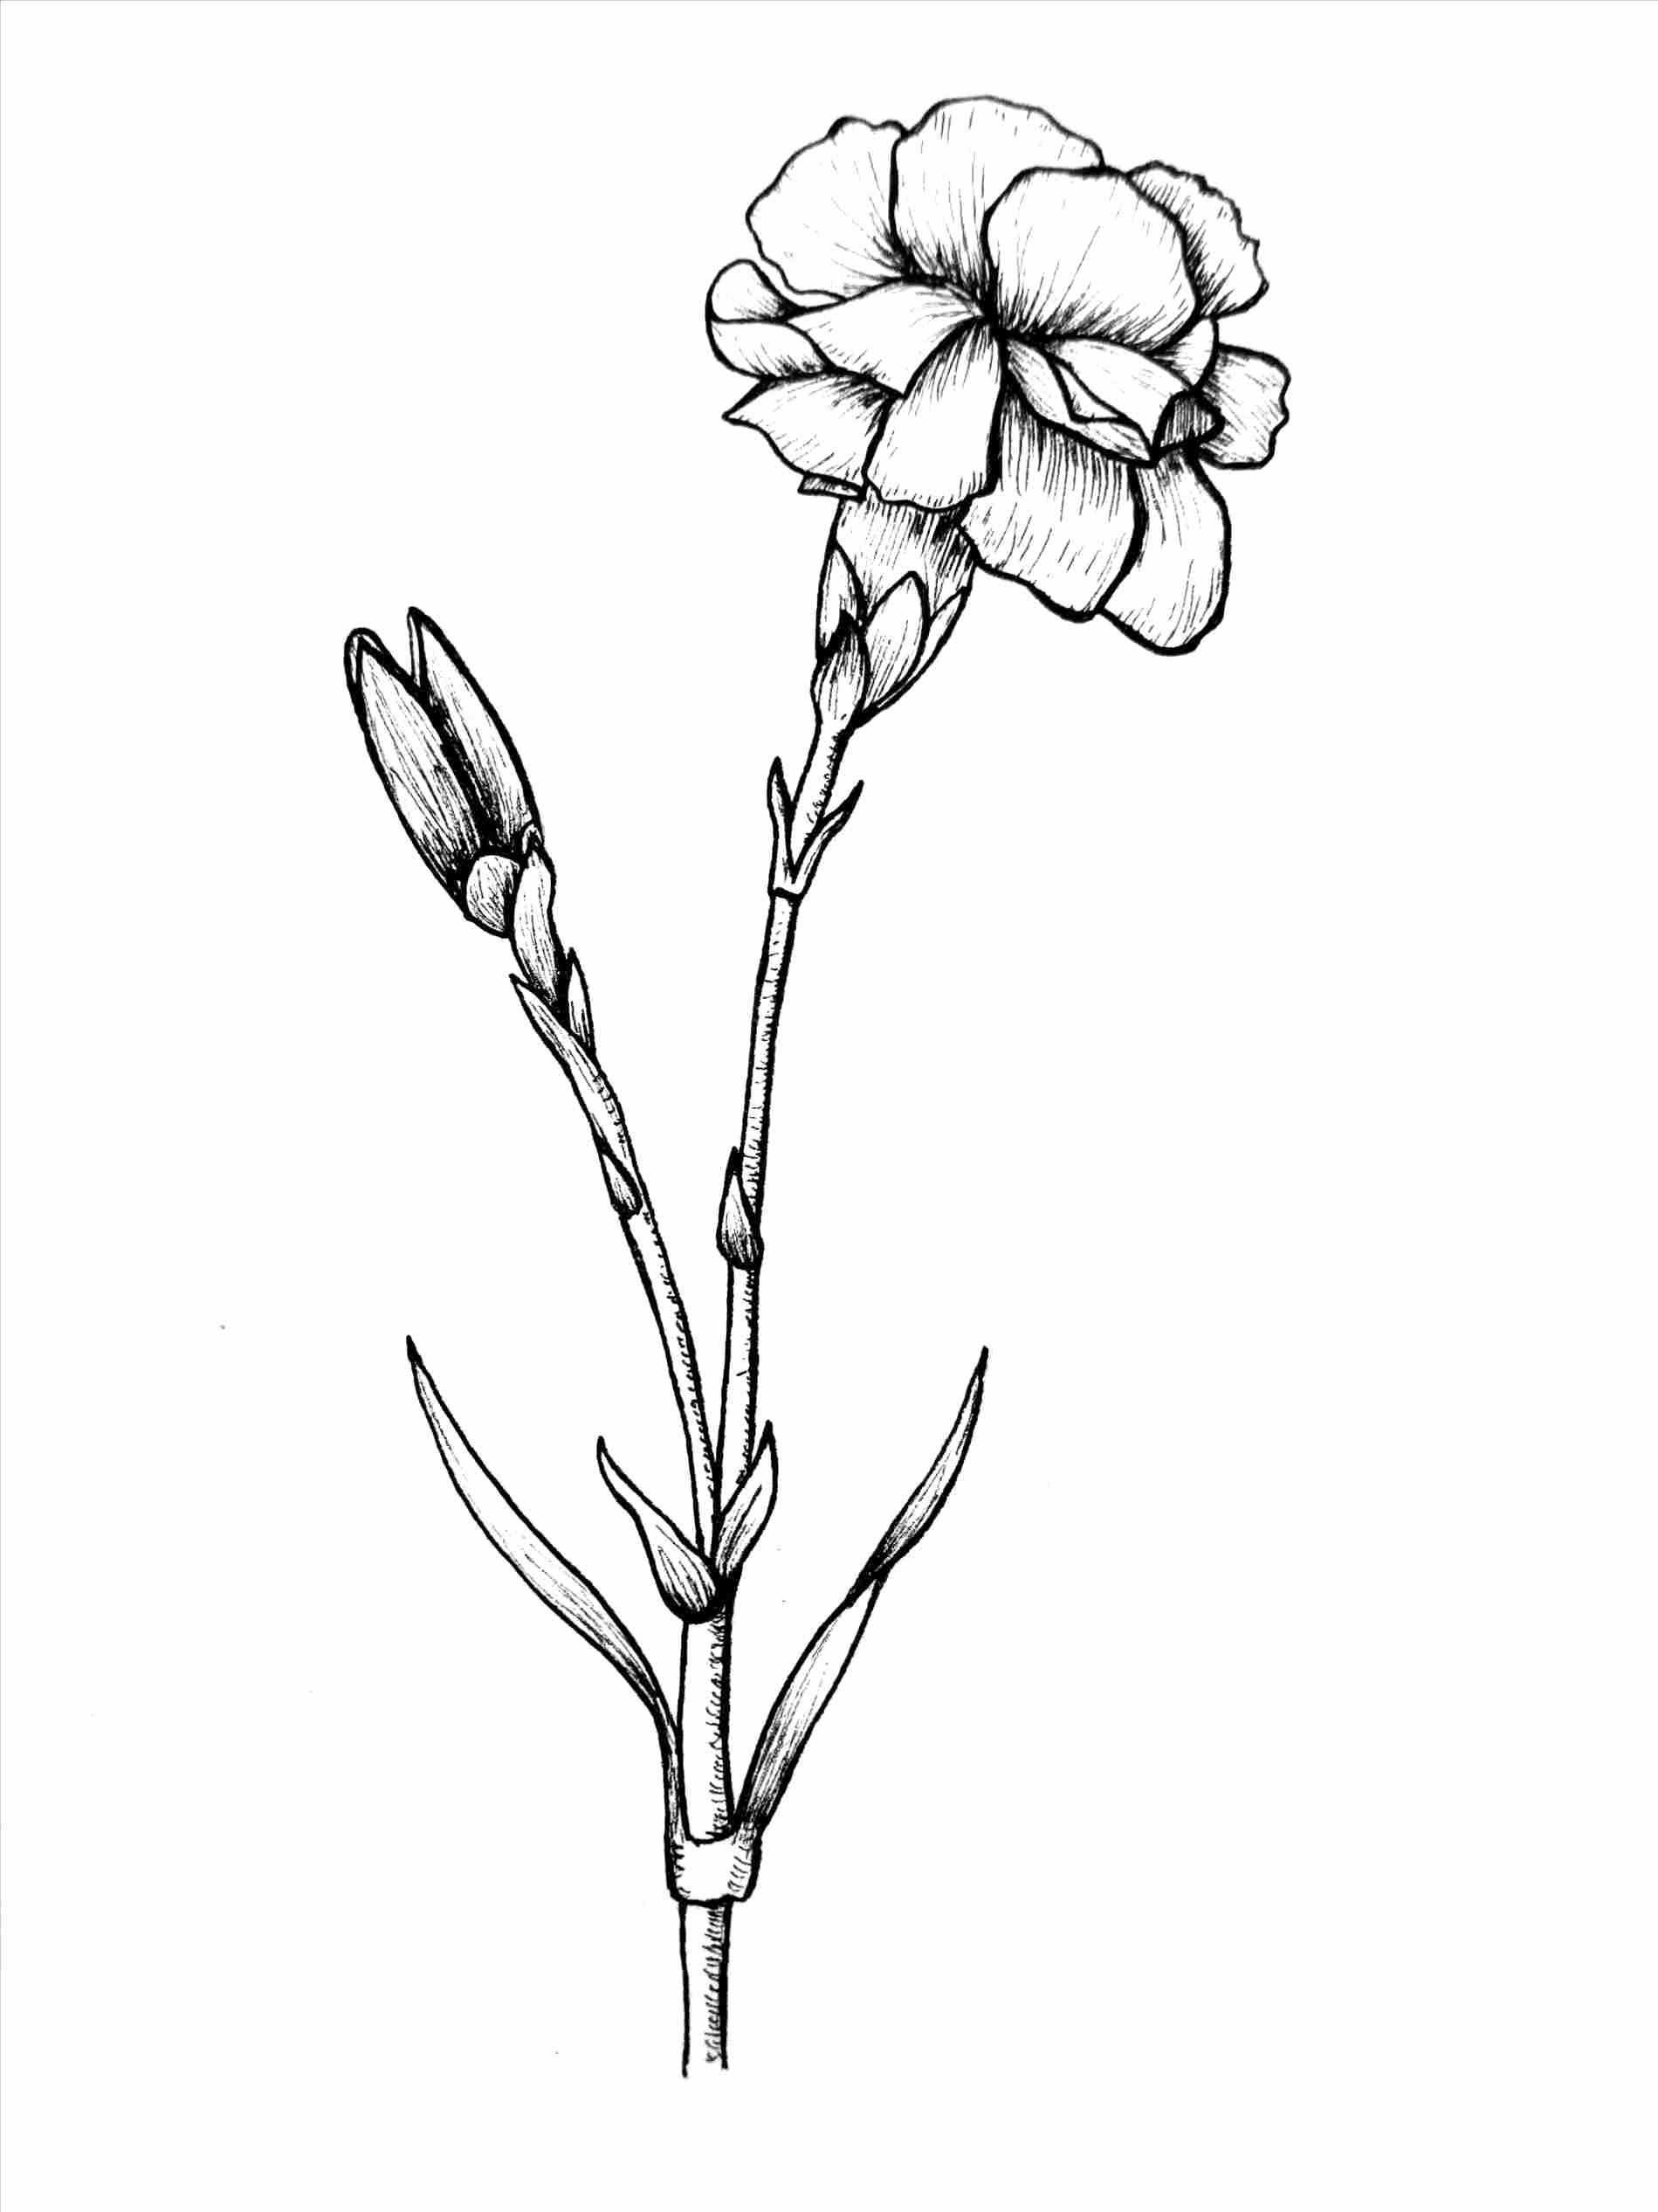 Coloring Flowers Pencils Awesome Carnation Colored Pencil Drawings Flower In 2020 Cute Flower Drawing Flower Art Drawing Flower Drawing